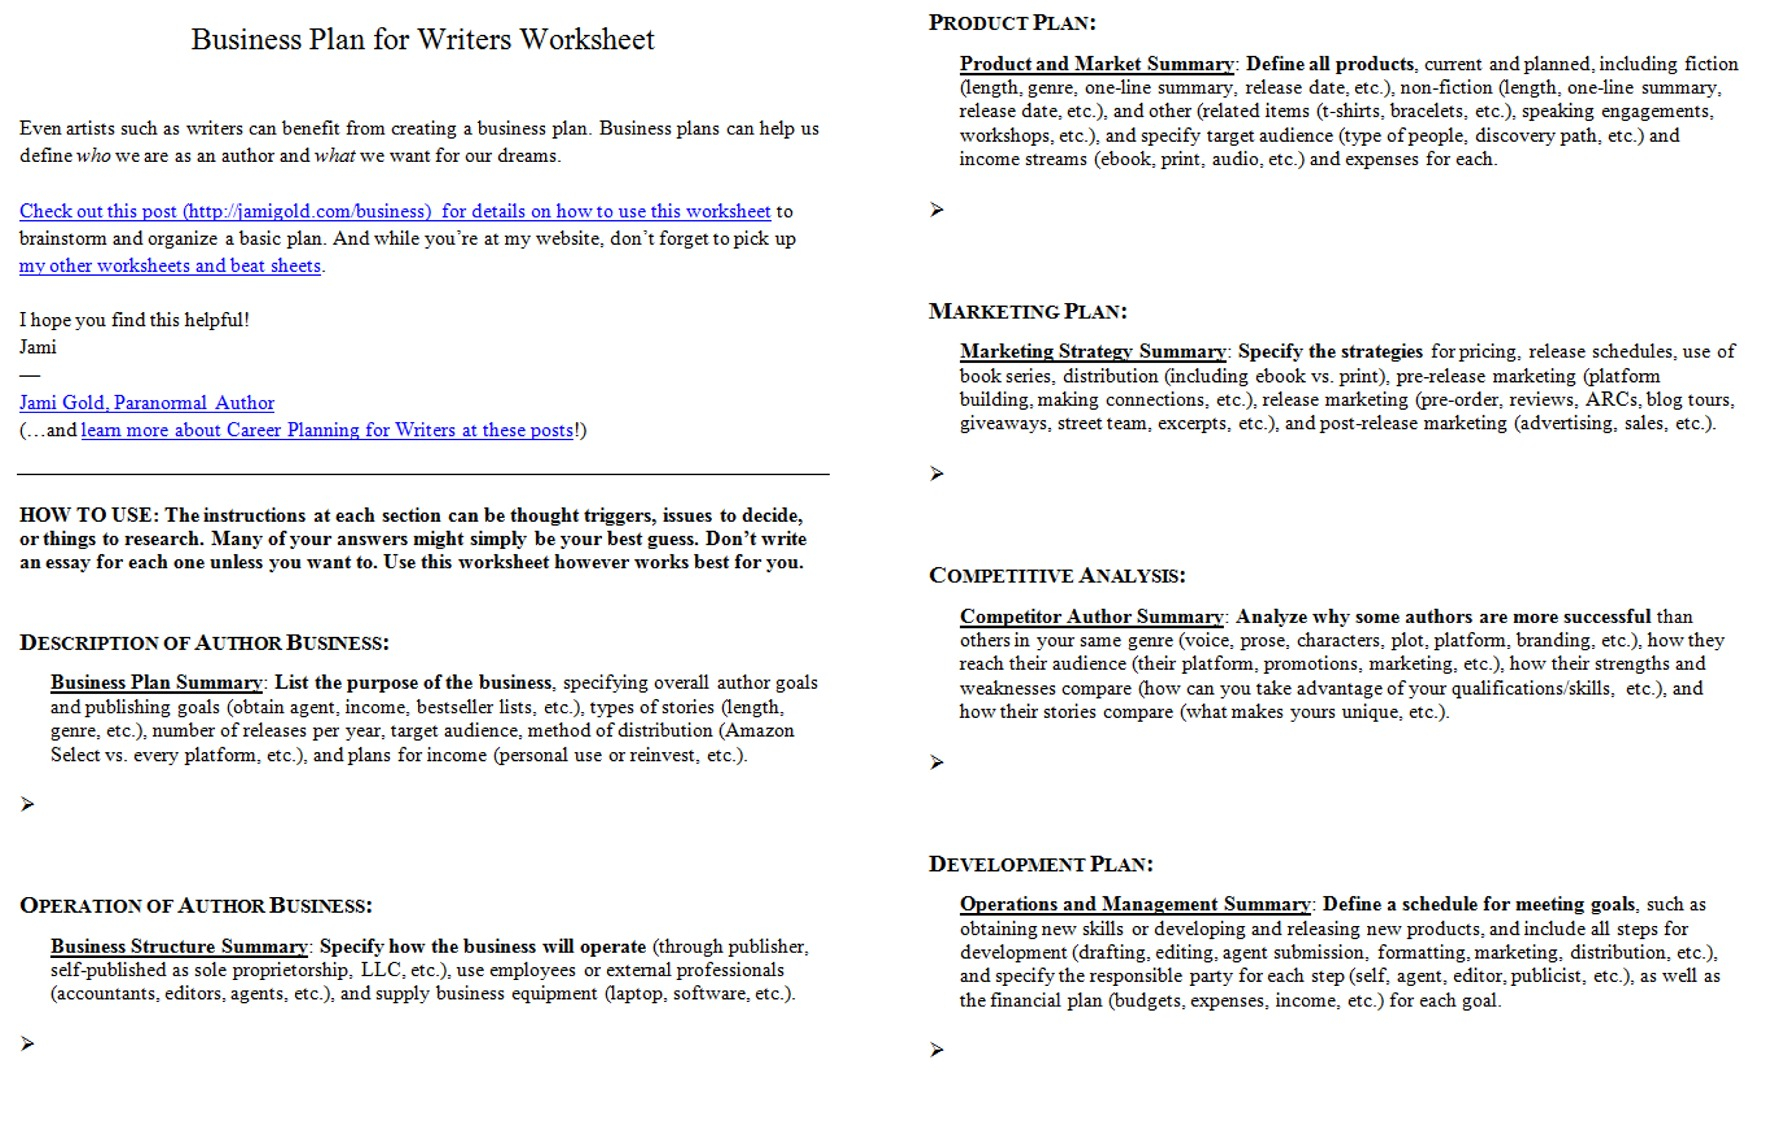 Weirdmailus  Ravishing Worksheets For Writers  Jami Gold Paranormal Author With Luxury Screen Shot Of Both Pages Of The Business Plan For Writers Worksheet With Comely Cartesian Plane Worksheets Grade  Also Place Value To Hundred Thousands Worksheets In Addition Contractions Worksheets Grade  And Traffic Sign Worksheets As Well As Grade  Phonics Worksheets Additionally Prime Factor Tree Worksheets From Jamigoldcom With Weirdmailus  Luxury Worksheets For Writers  Jami Gold Paranormal Author With Comely Screen Shot Of Both Pages Of The Business Plan For Writers Worksheet And Ravishing Cartesian Plane Worksheets Grade  Also Place Value To Hundred Thousands Worksheets In Addition Contractions Worksheets Grade  From Jamigoldcom